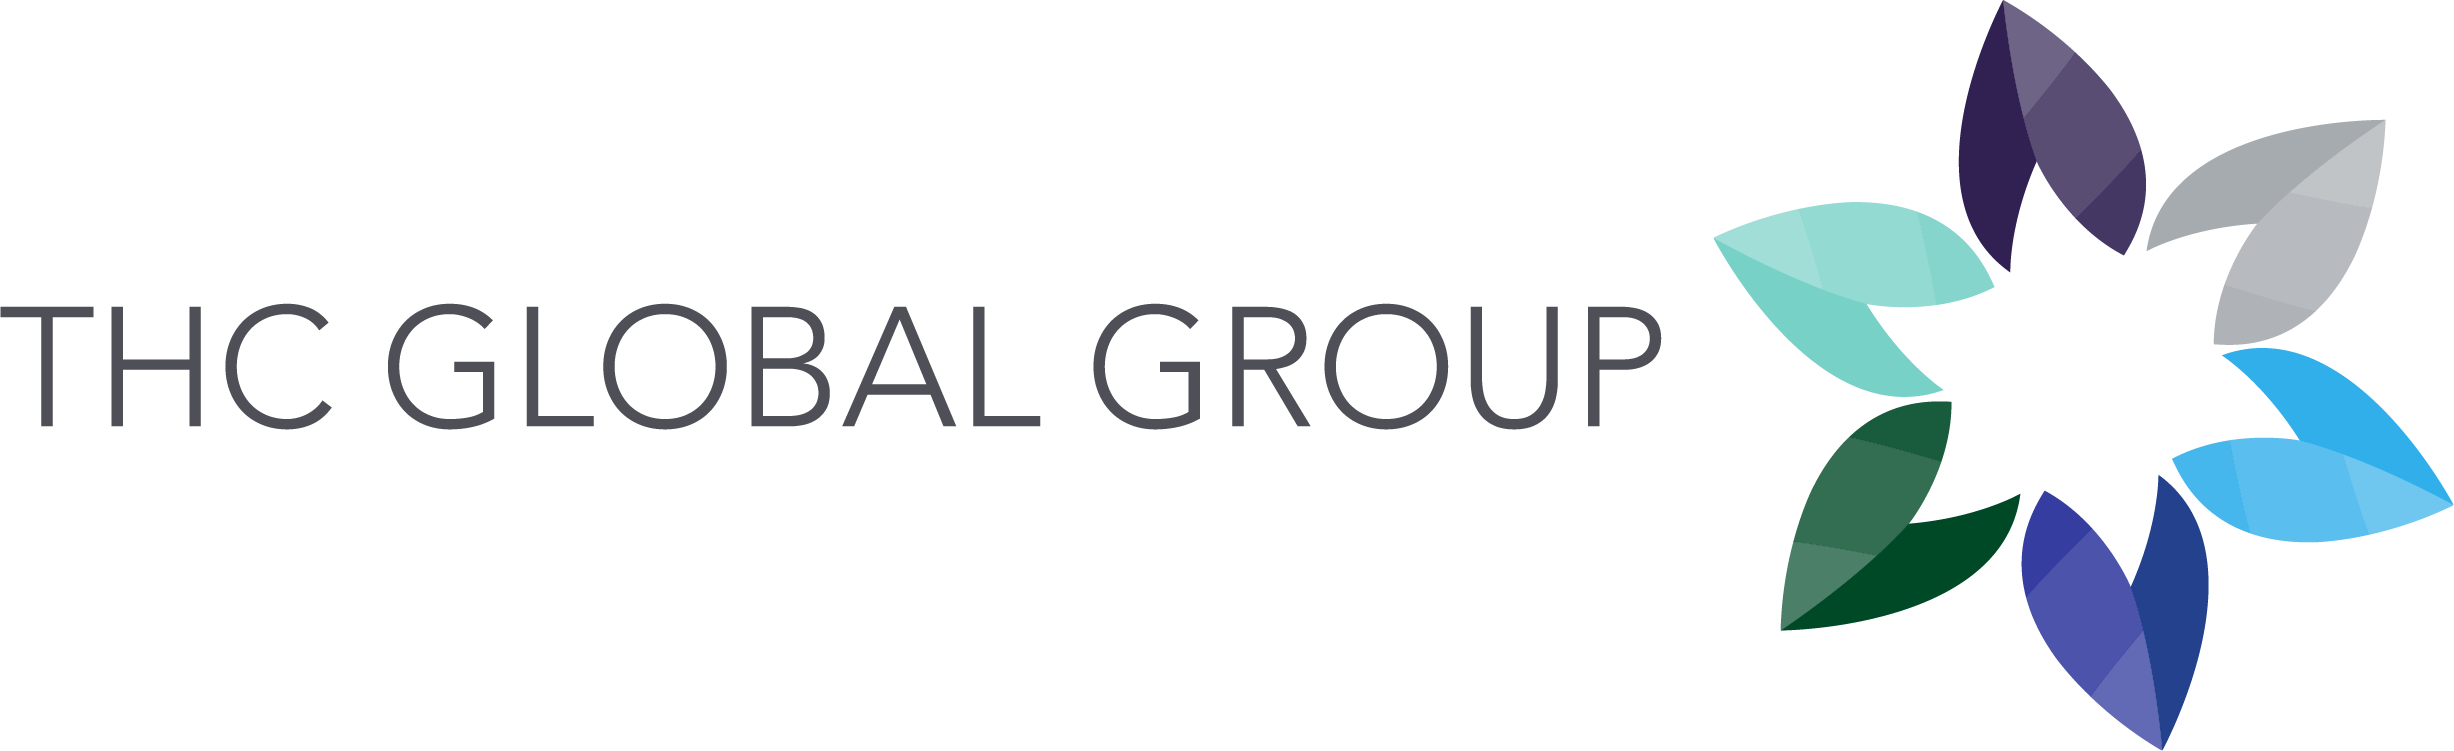 THC Global Group Limited THC